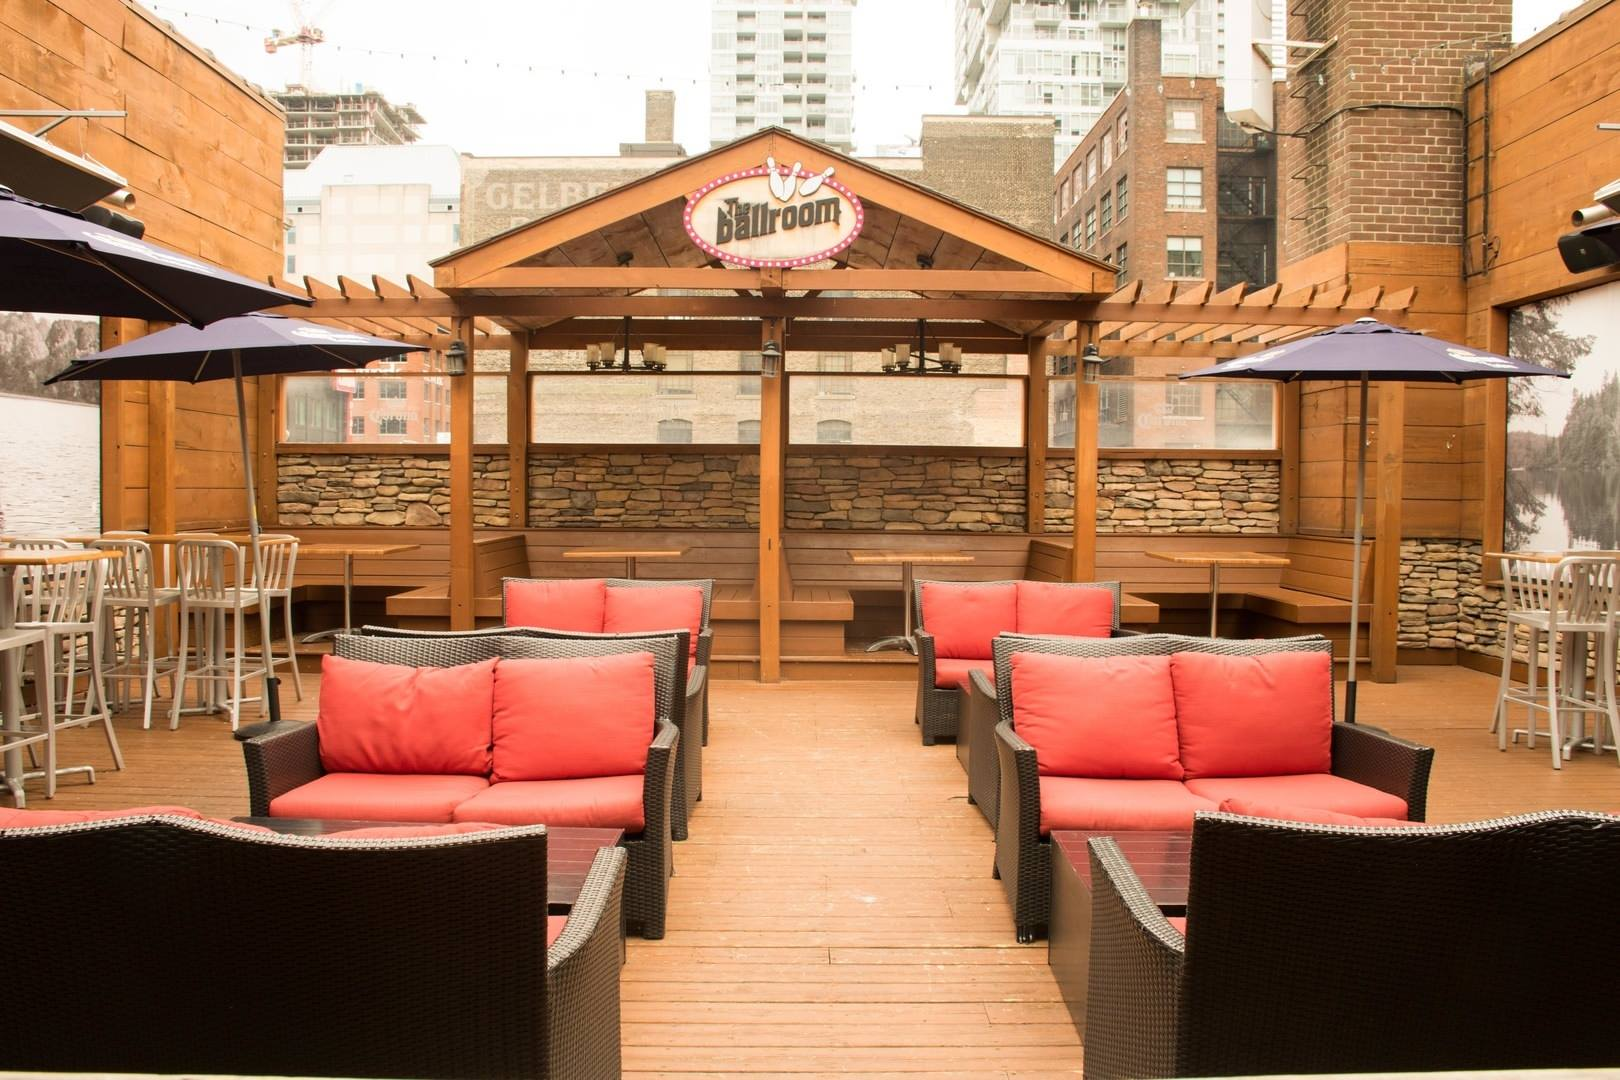 The Ballroom Bowl patio rooftop